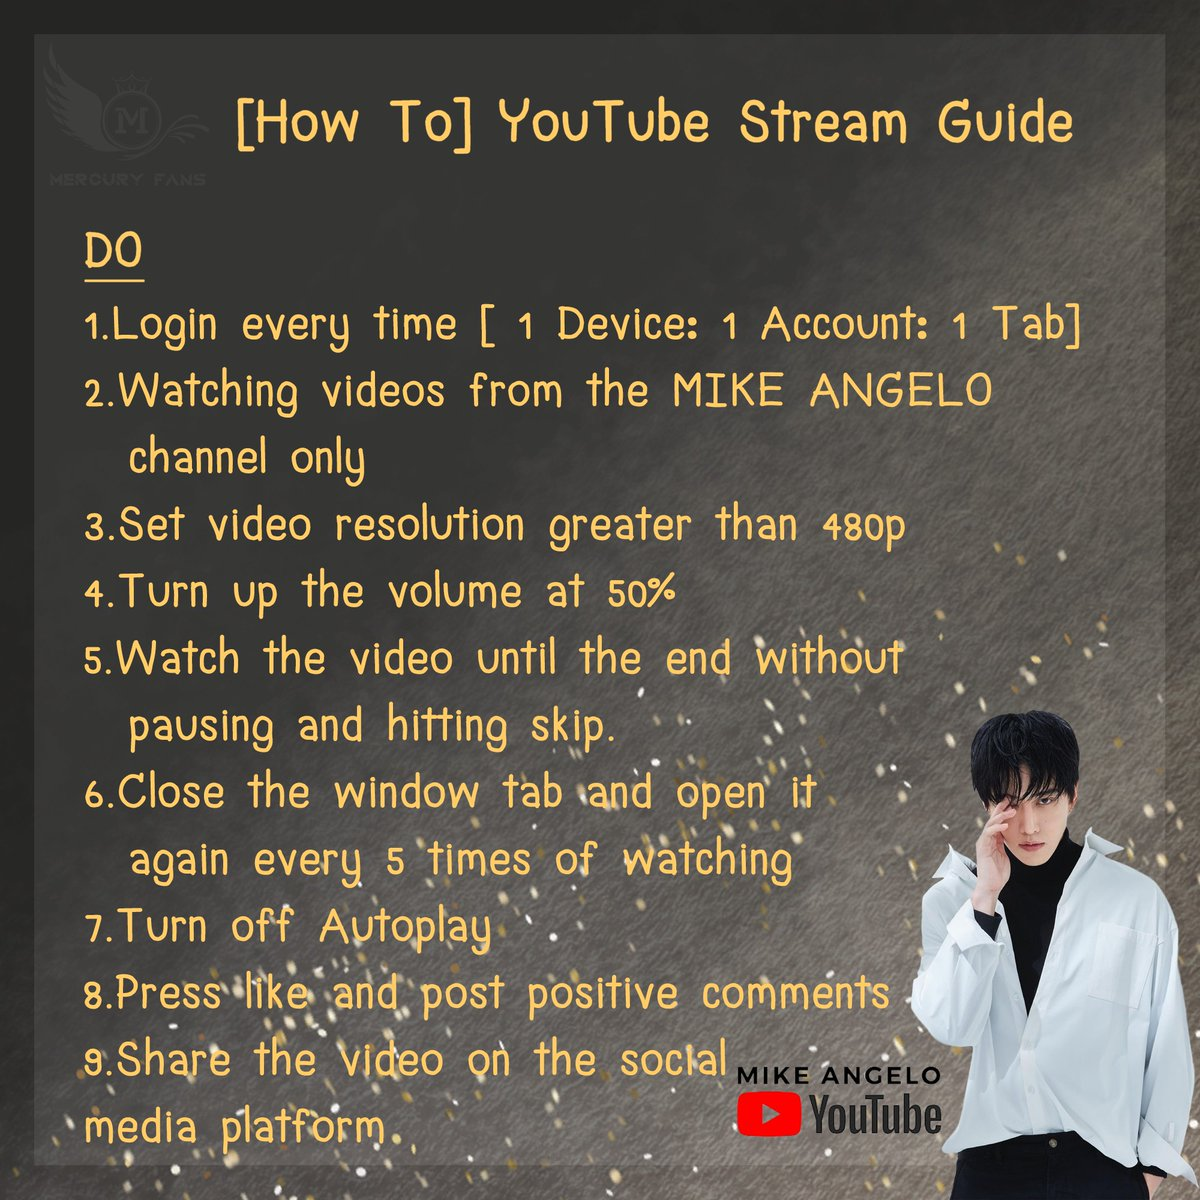 YouTube streaming guide  Repost @m1keangeloth  #ไมค์พิรัชต์ #m1keangelo  #MikeAngeloMercuryFans #MikeAngeloMercuryFansGlobal #mikeangelohollywood #mikeangelocalifornia #mikeangelousa #usa #hollywood #Asian #boy #fashion #style #youtube